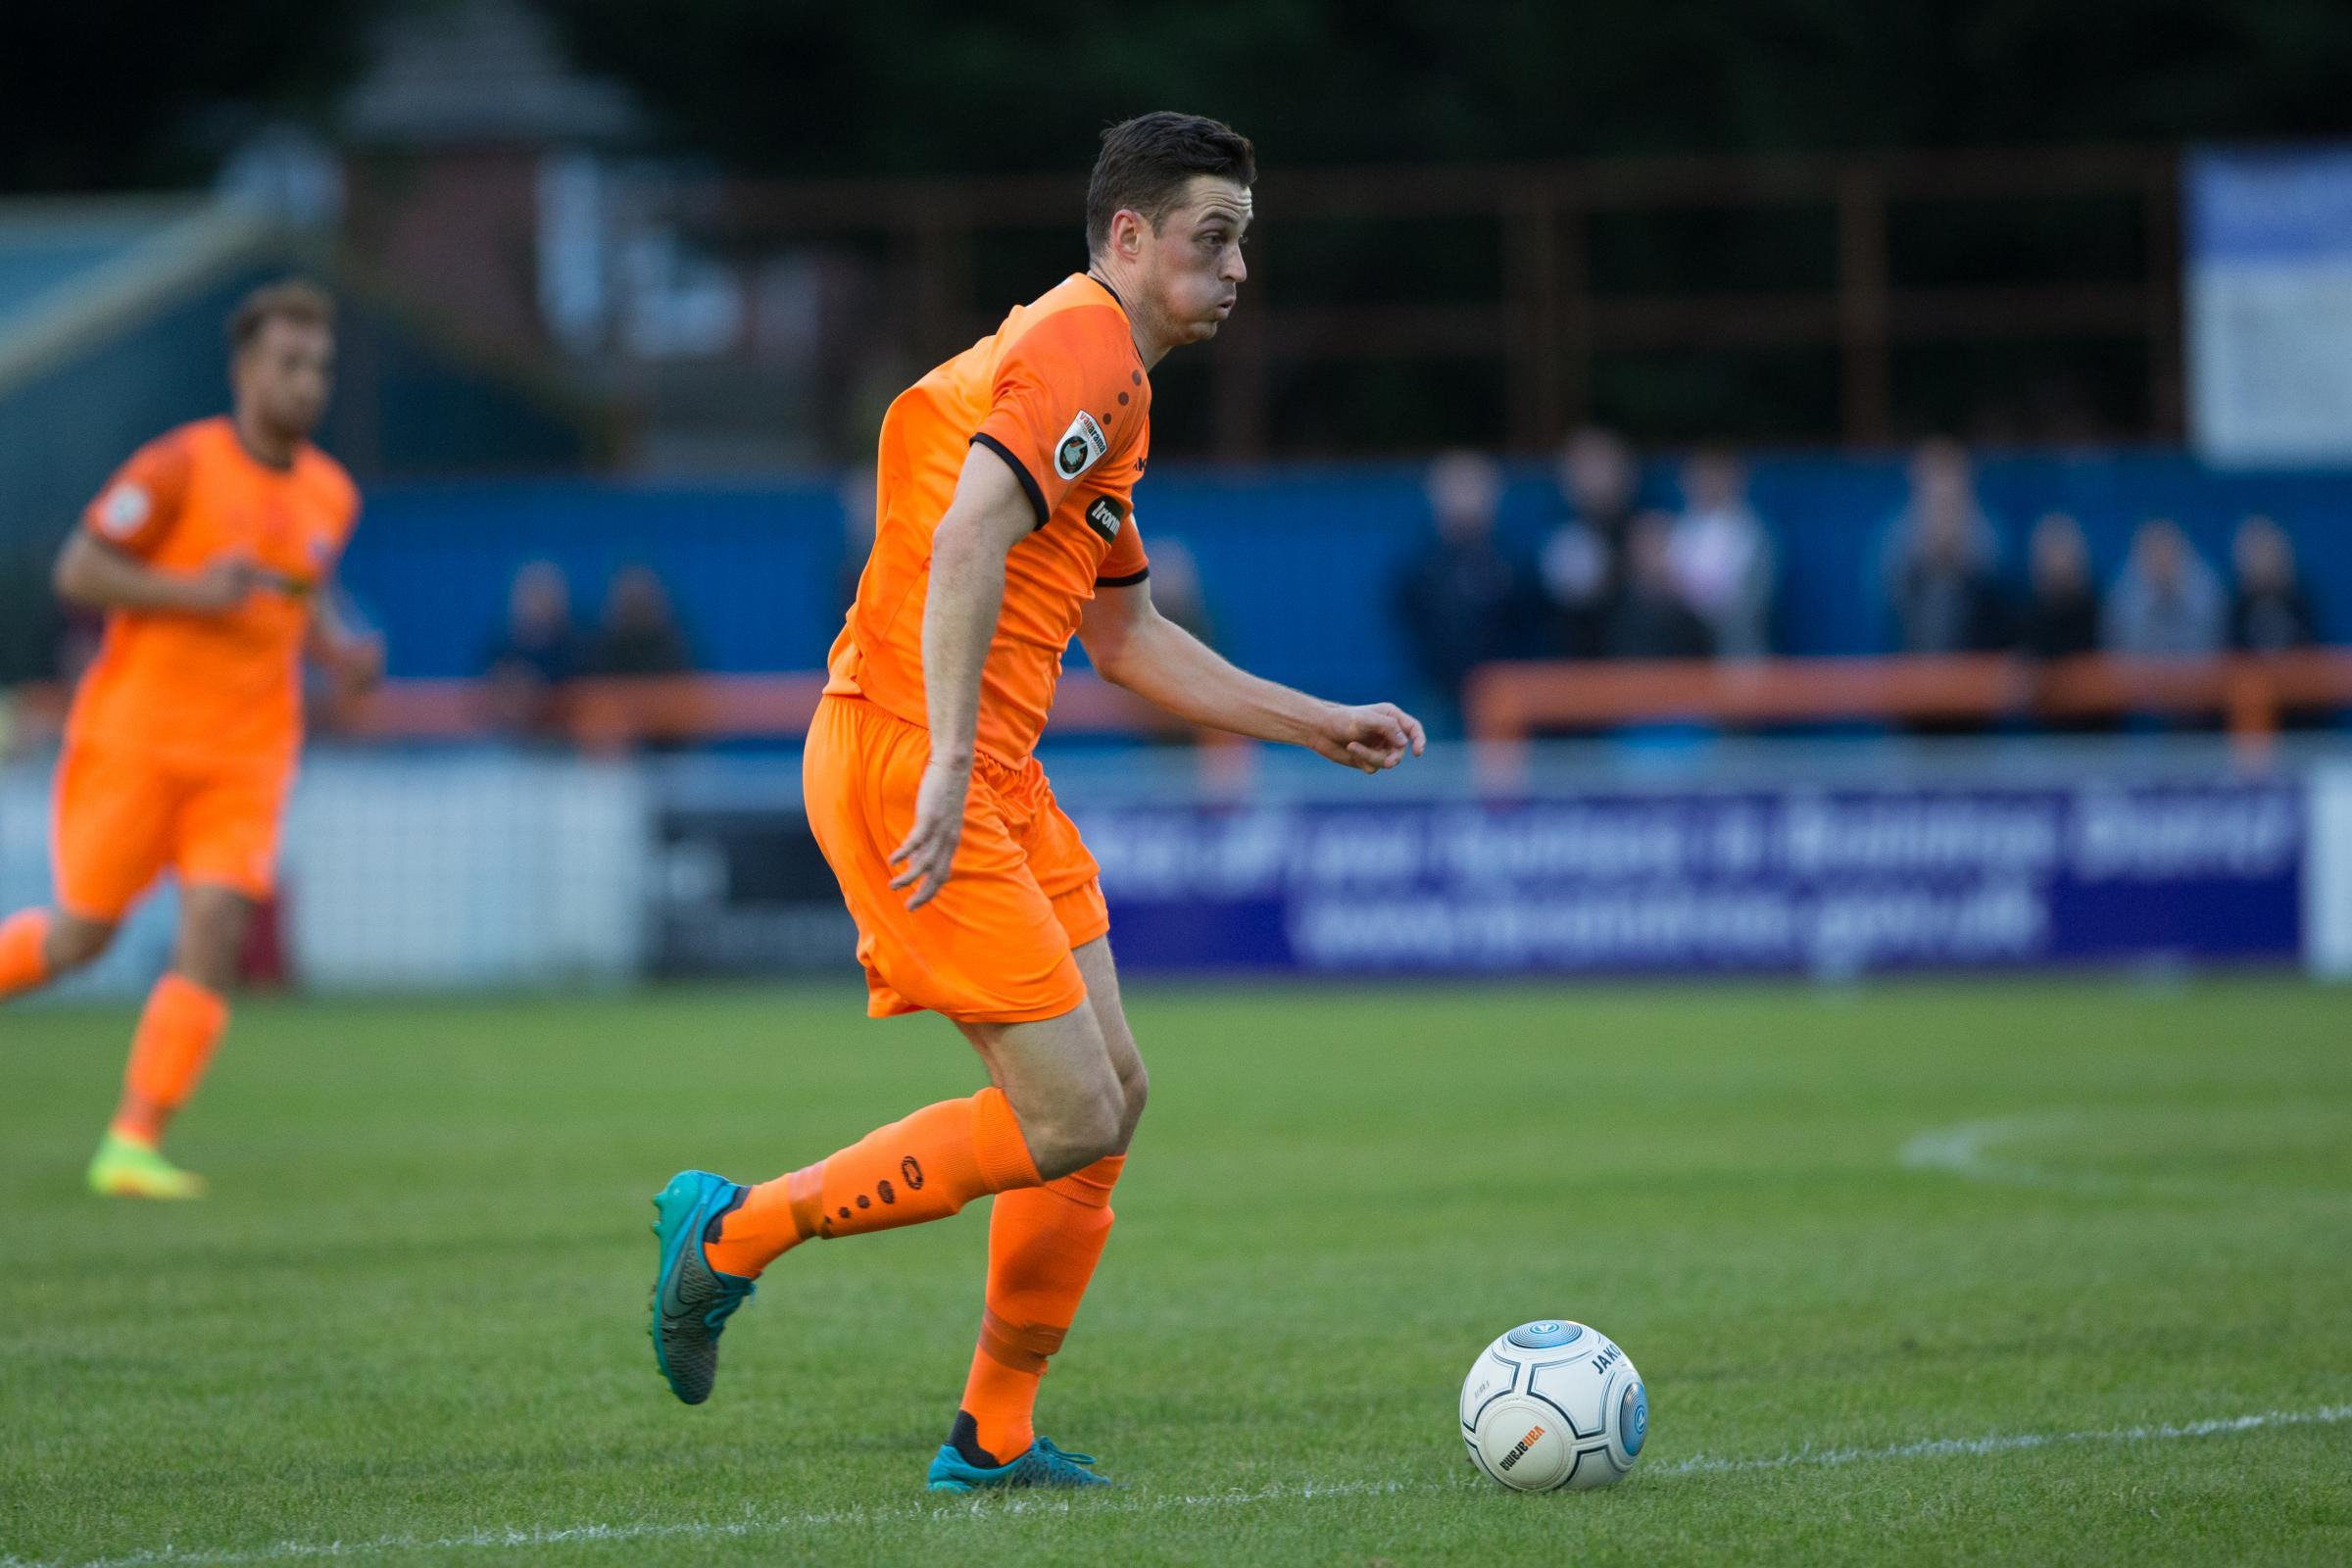 Luke Allen is getting close to a return for Braintree Town and manager Brad Quinton feels there's a chance he may be fit to face Eastbourne Borough. Picture: Chris Jarvis